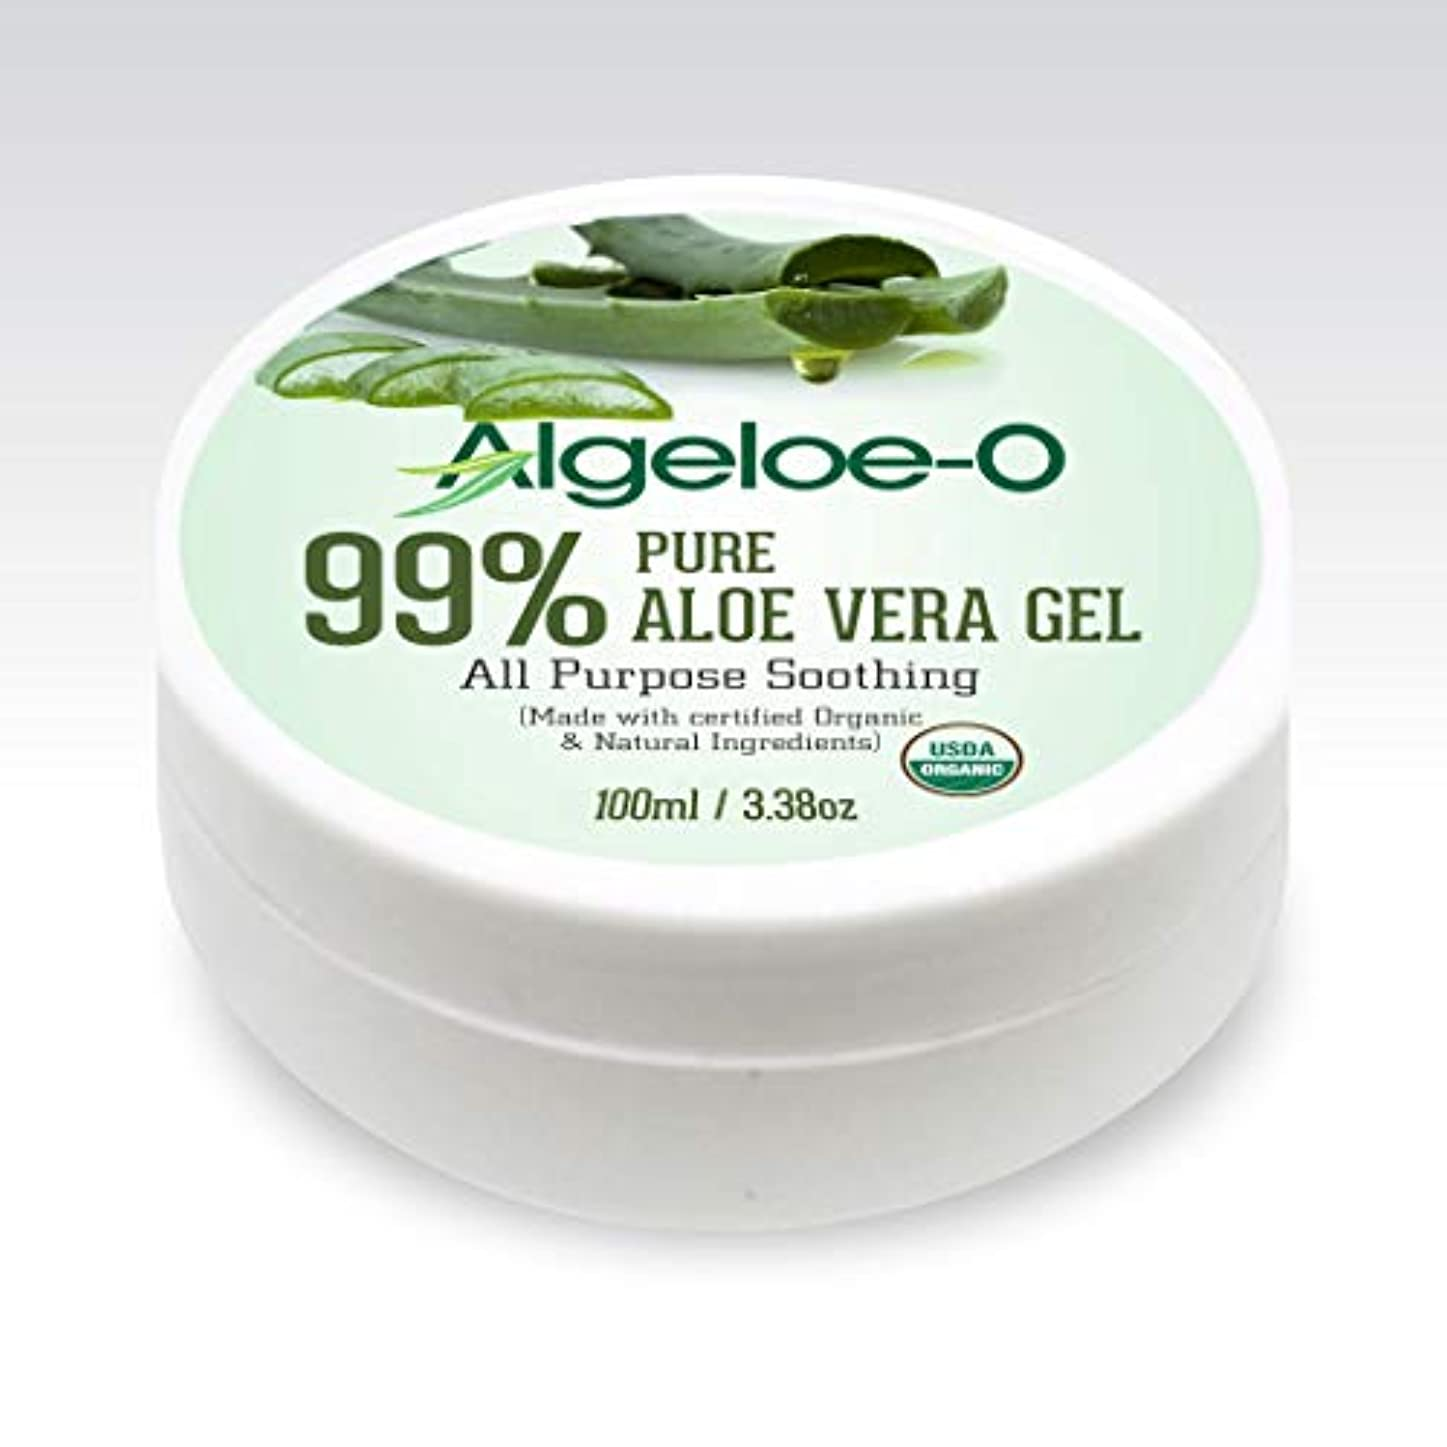 間接的出発する観光Algeloe-O  Organic Aloe Vera Gel 99% Pure Natural made with USDA Certified Aloe Vera Powder Paraben, sulfate free...